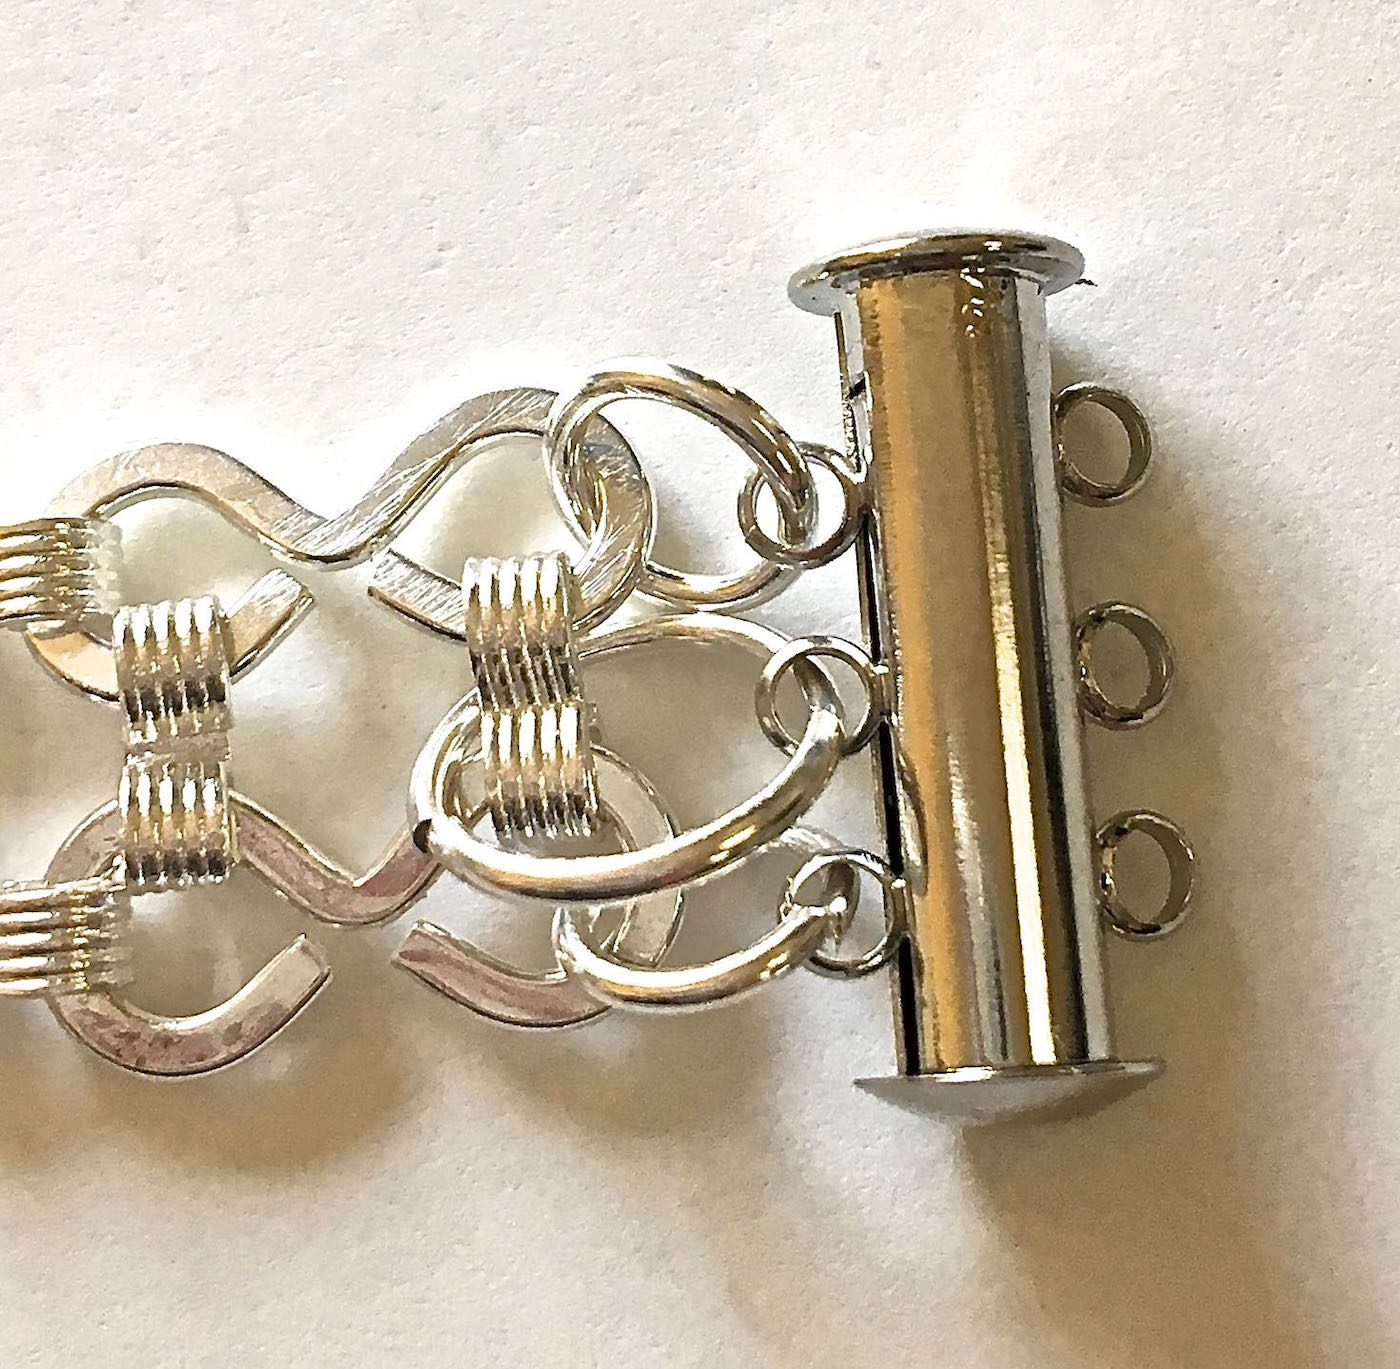 step 9 - Attach Strands One, Two and Three to jump rings in that order. Attach toggle clasps to the jump rings.